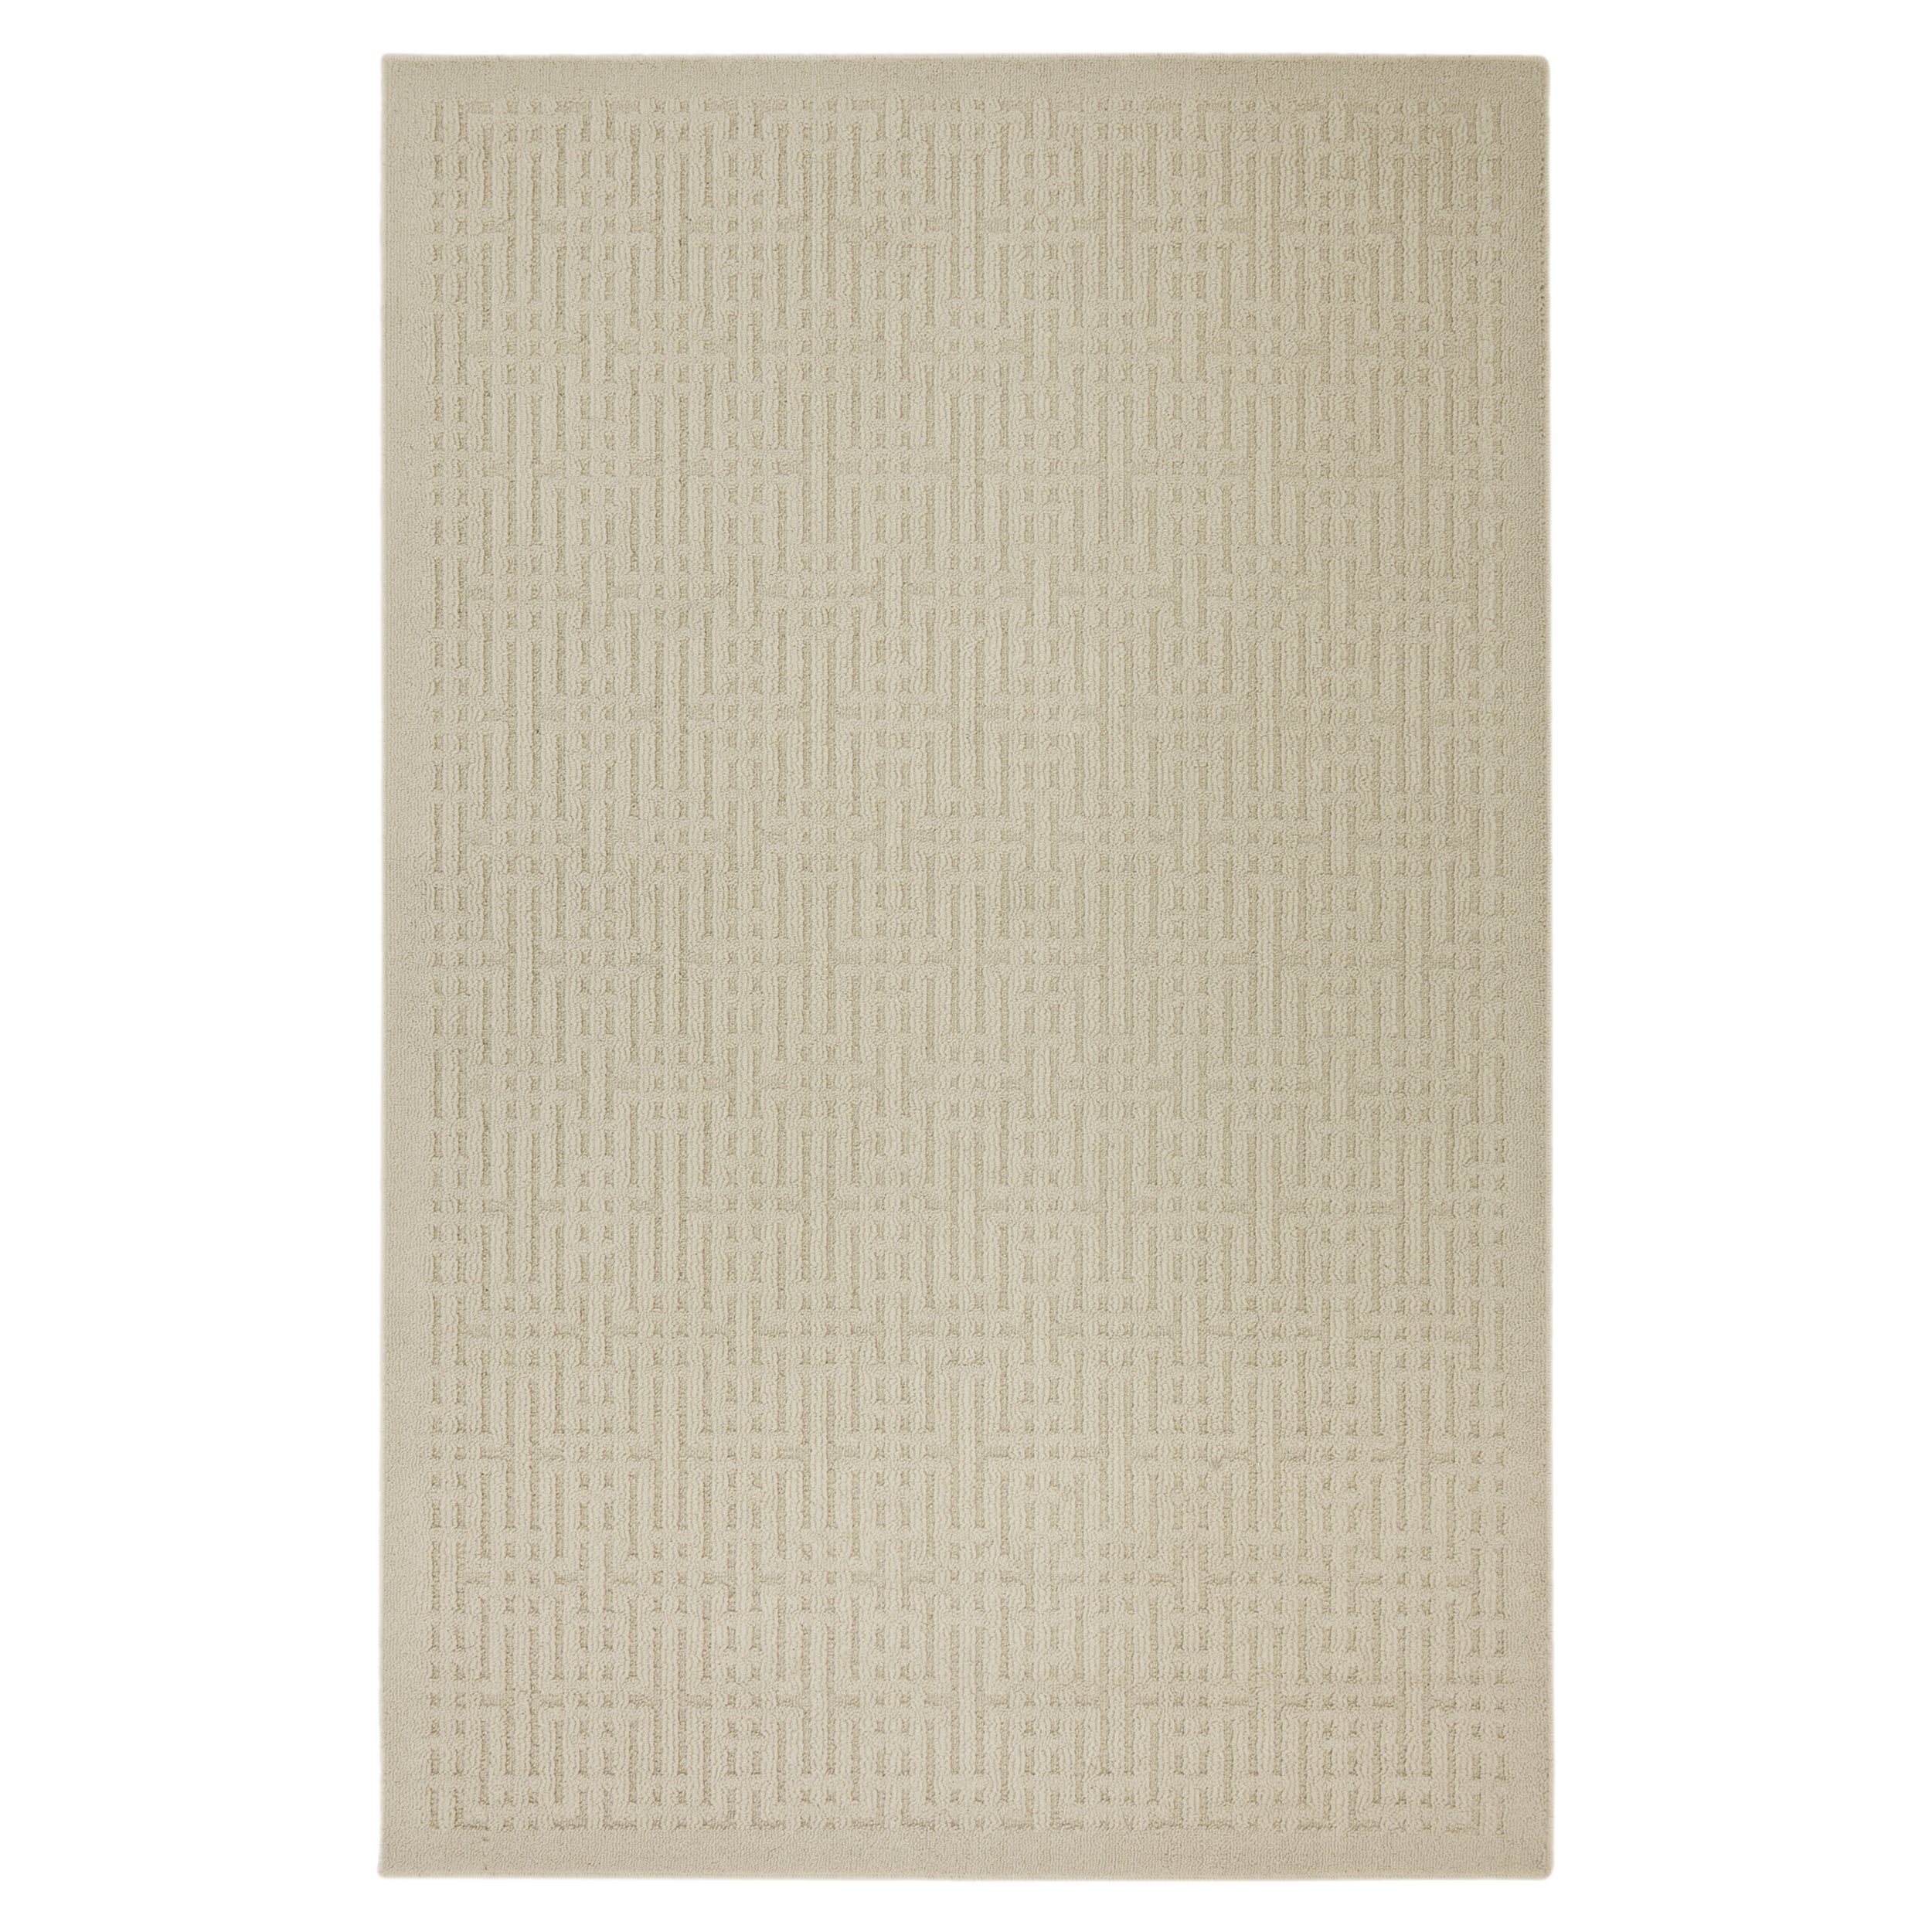 Stacks Natural Beige Rug (5' x 7')